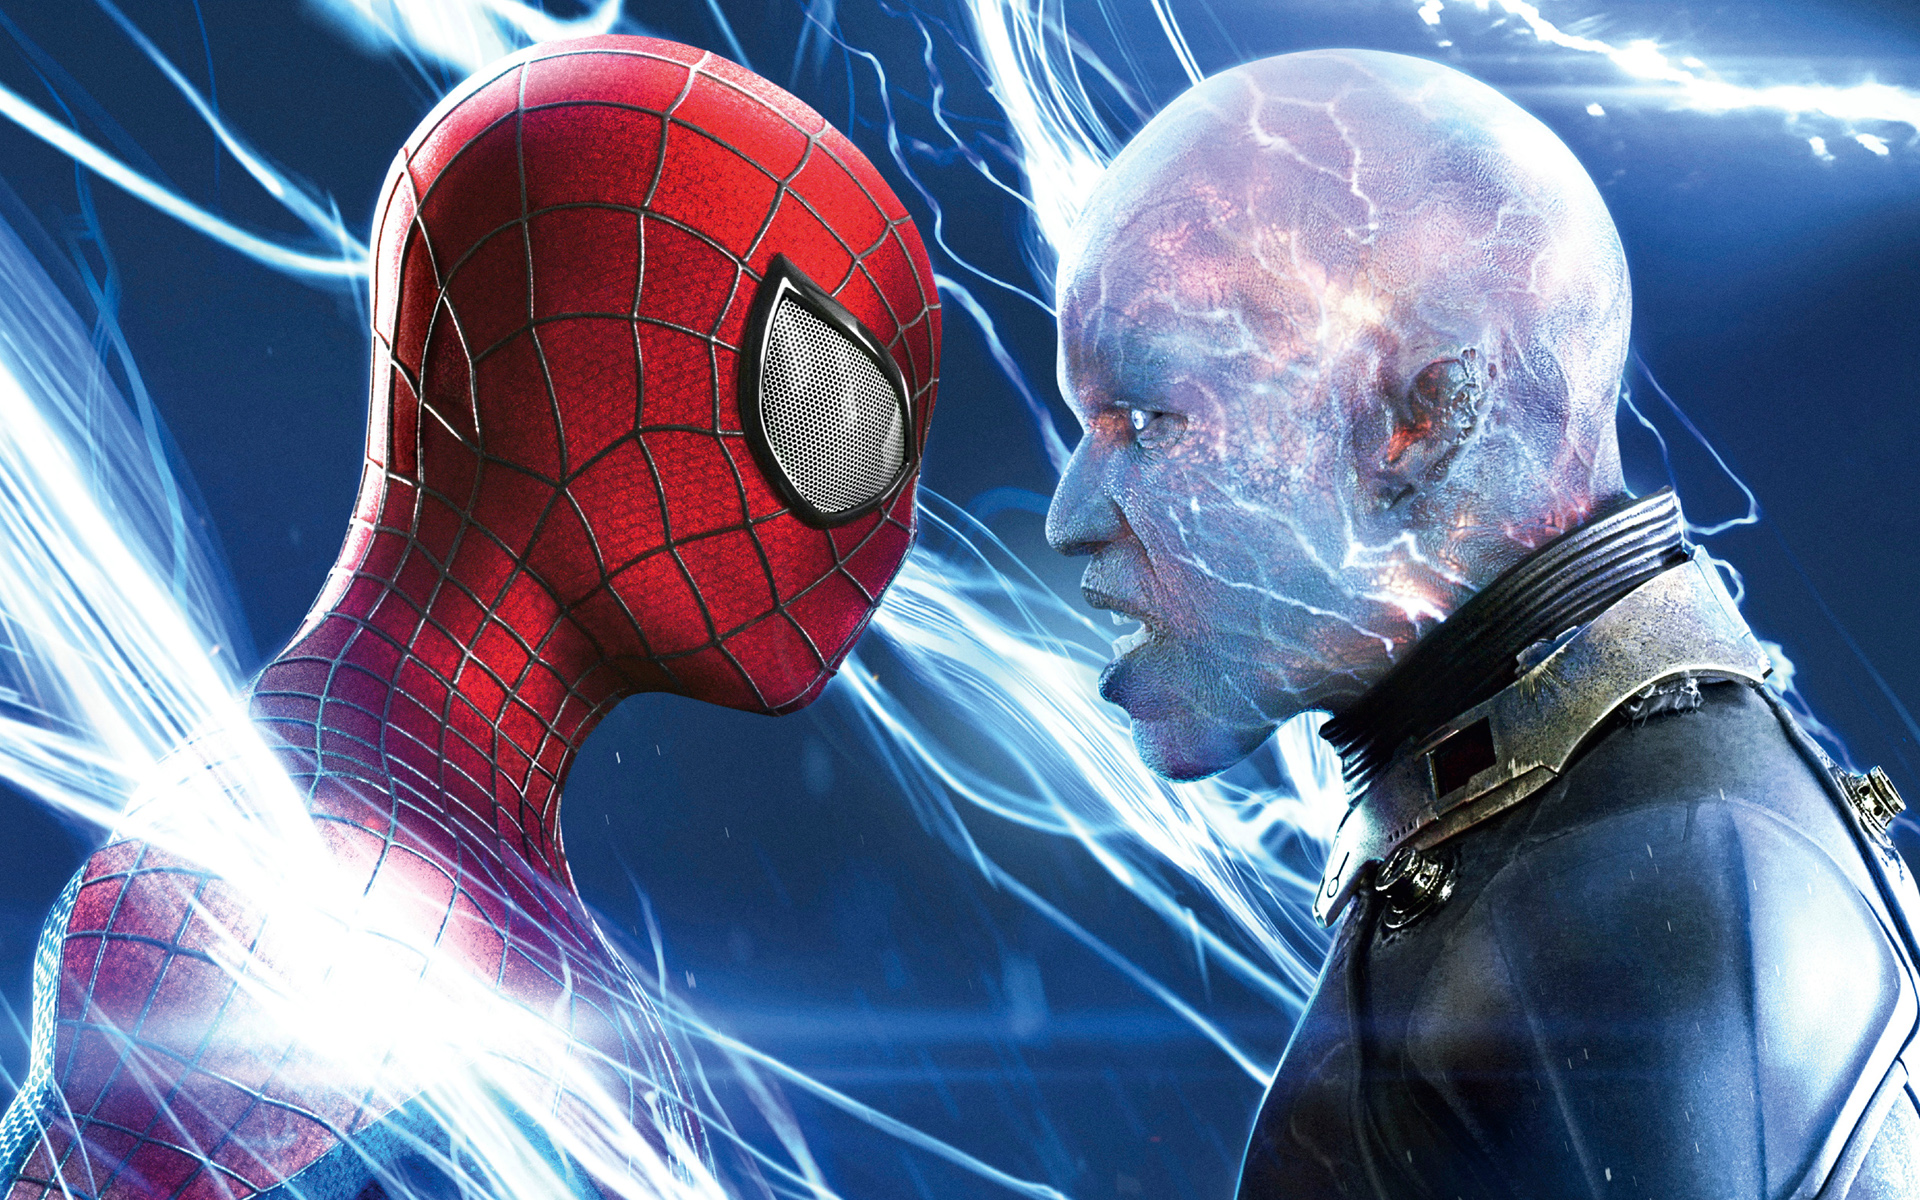 Amazing Spider-Man 2 Epic Shot